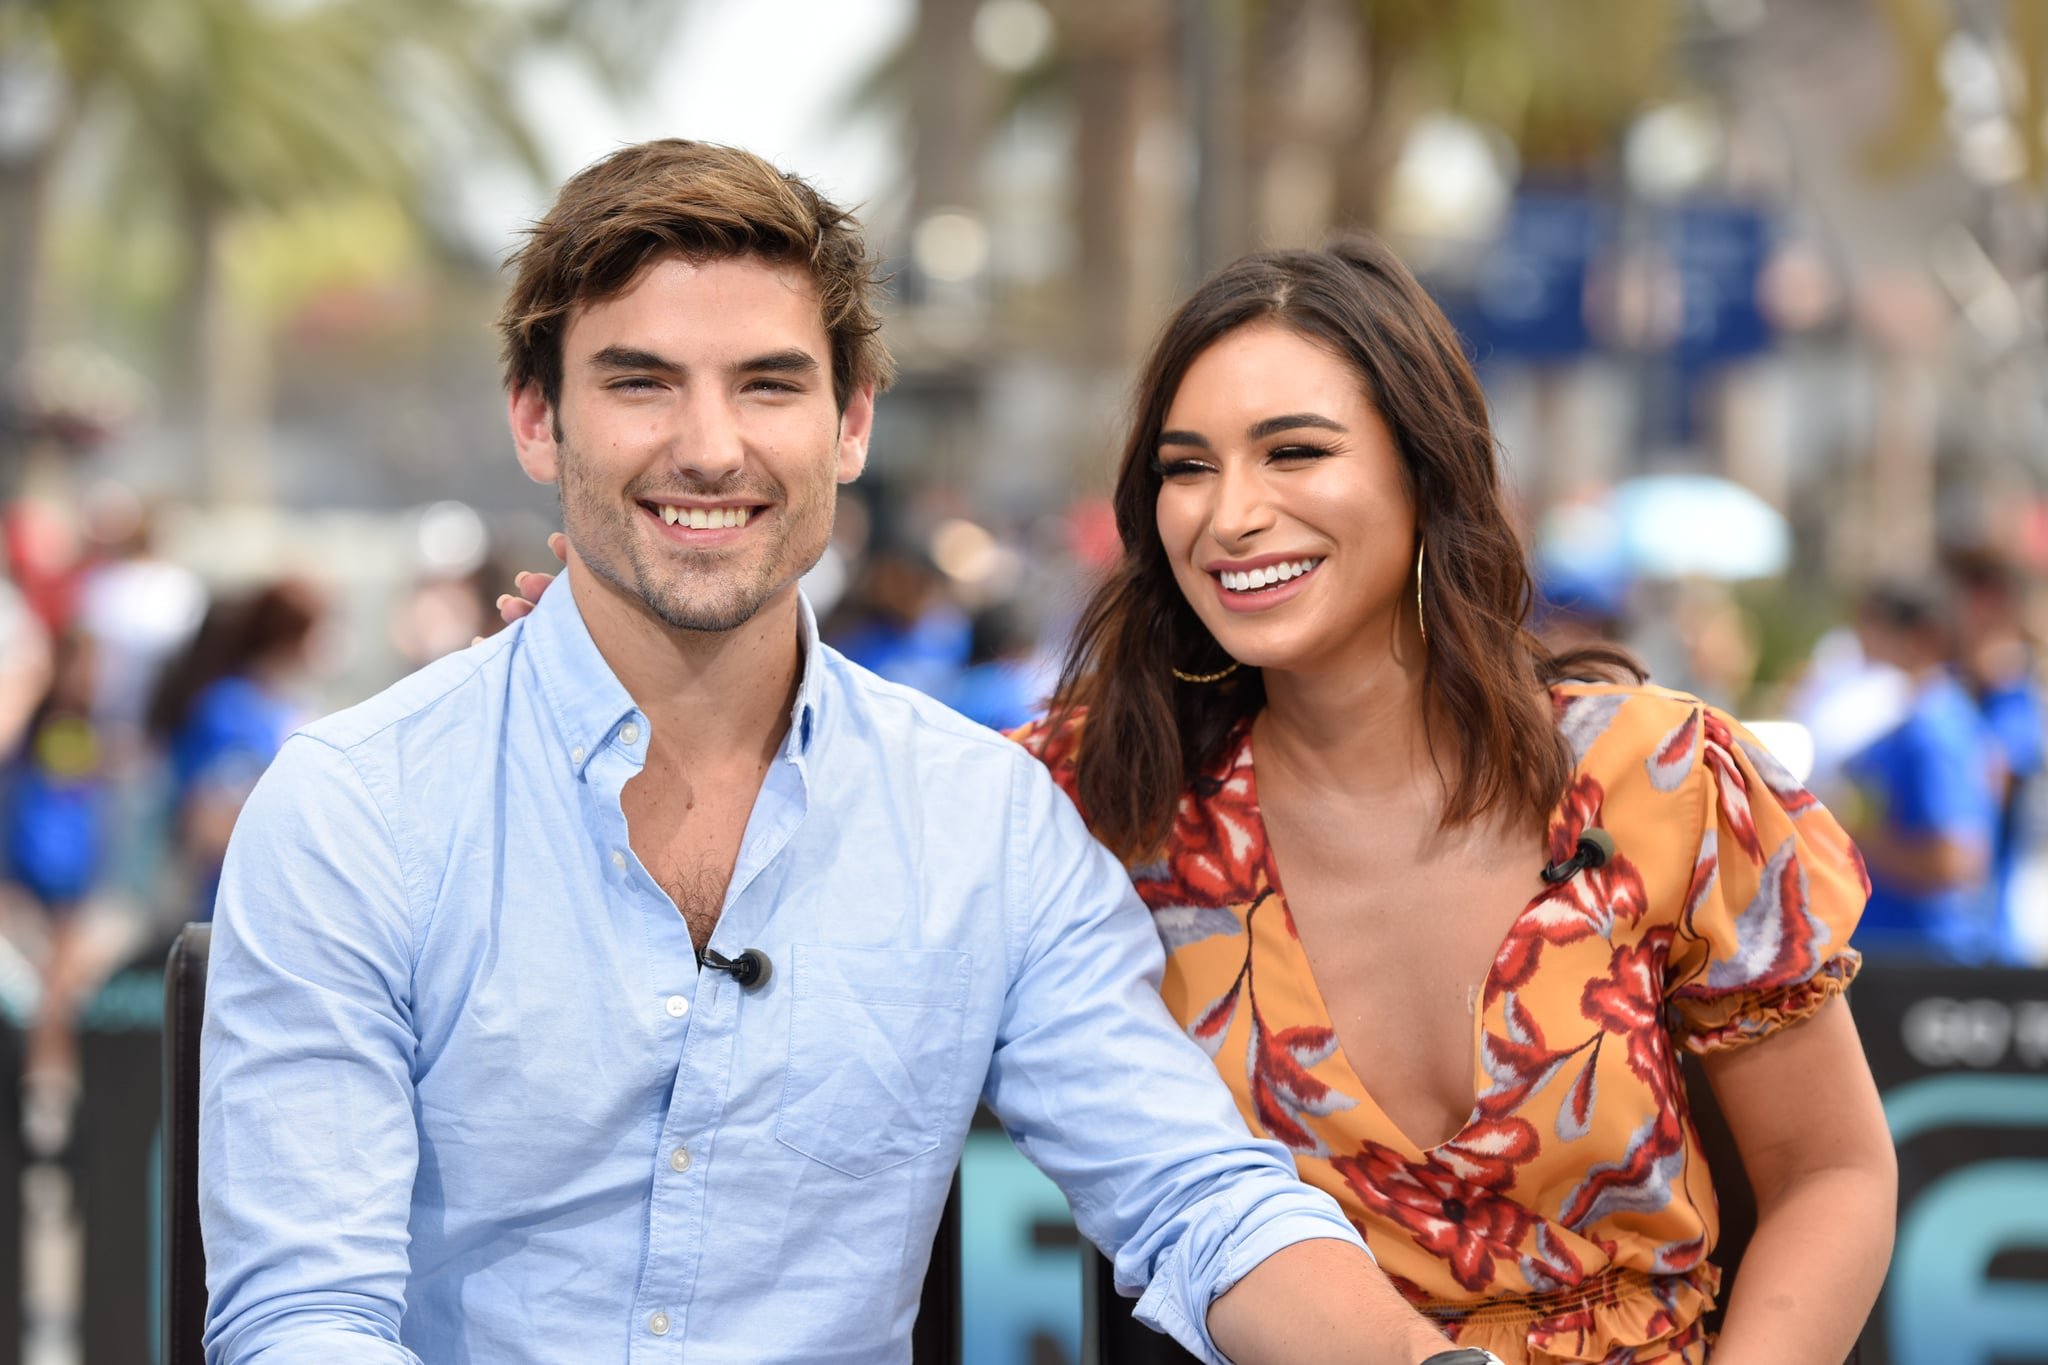 UNIVERSAL CITY, CA - JULY 11:  Jared Haibon (L) and Ashley Iaconetti visit